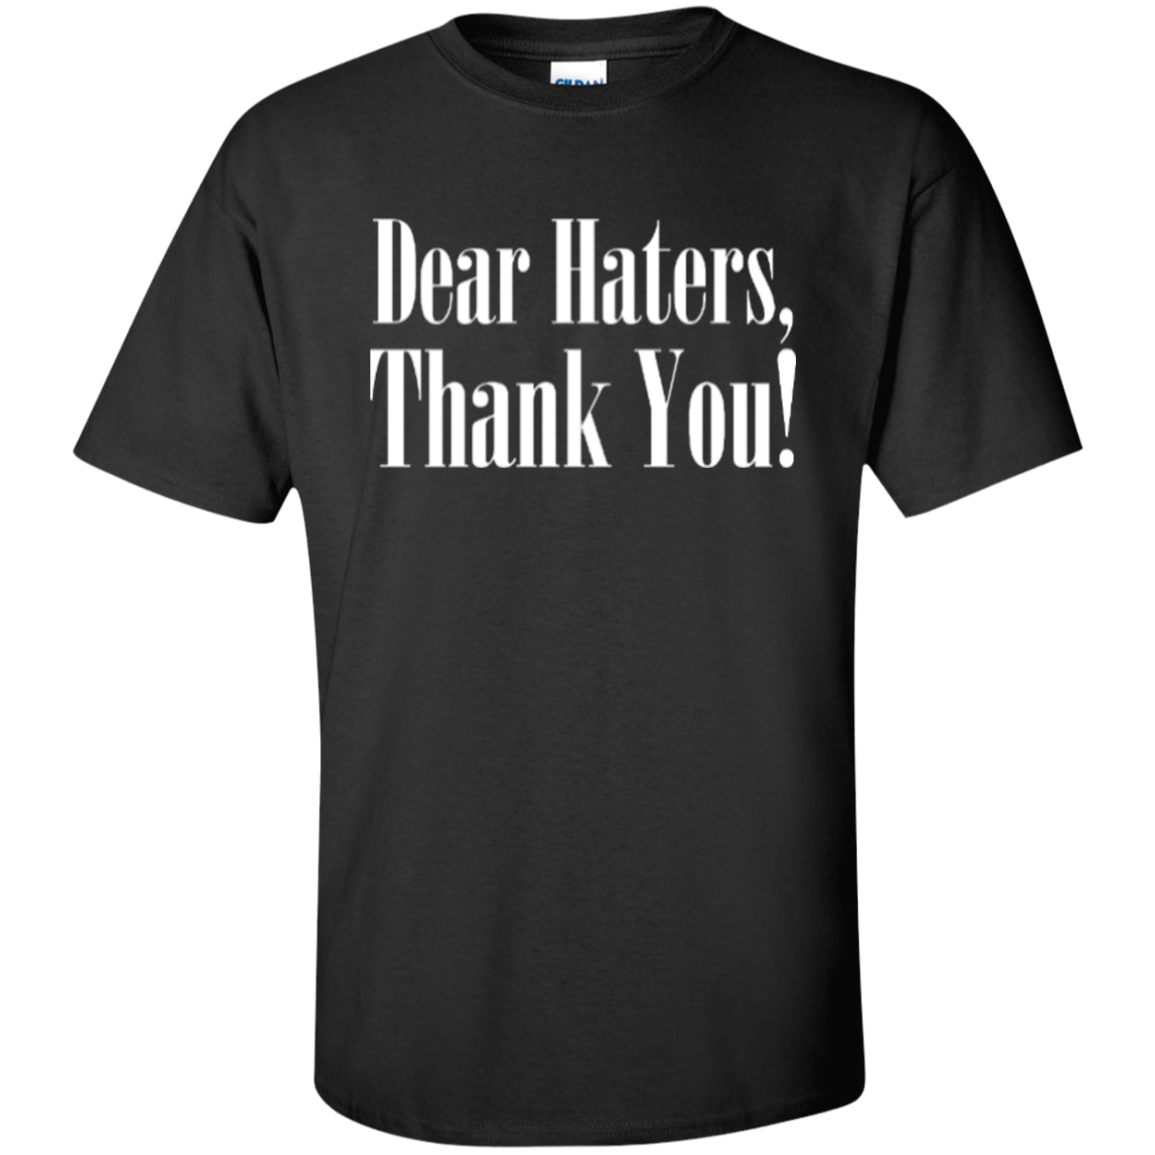 Dear haters hip hop street fashion custom tall tees for Hip hop t shirts big and tall